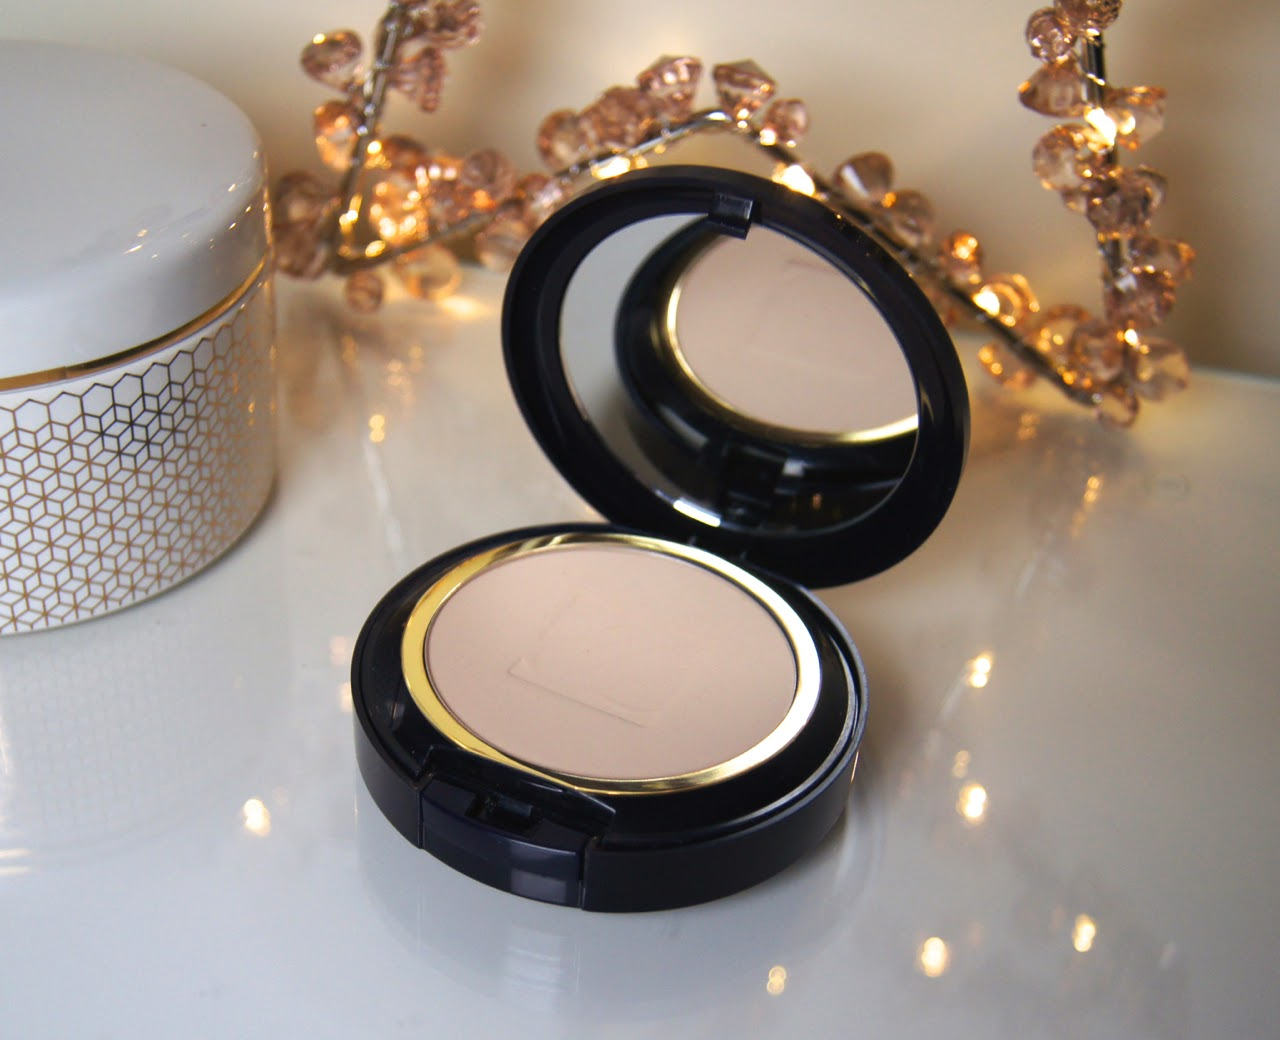 estee lauder double wear stay in place powder makeup review